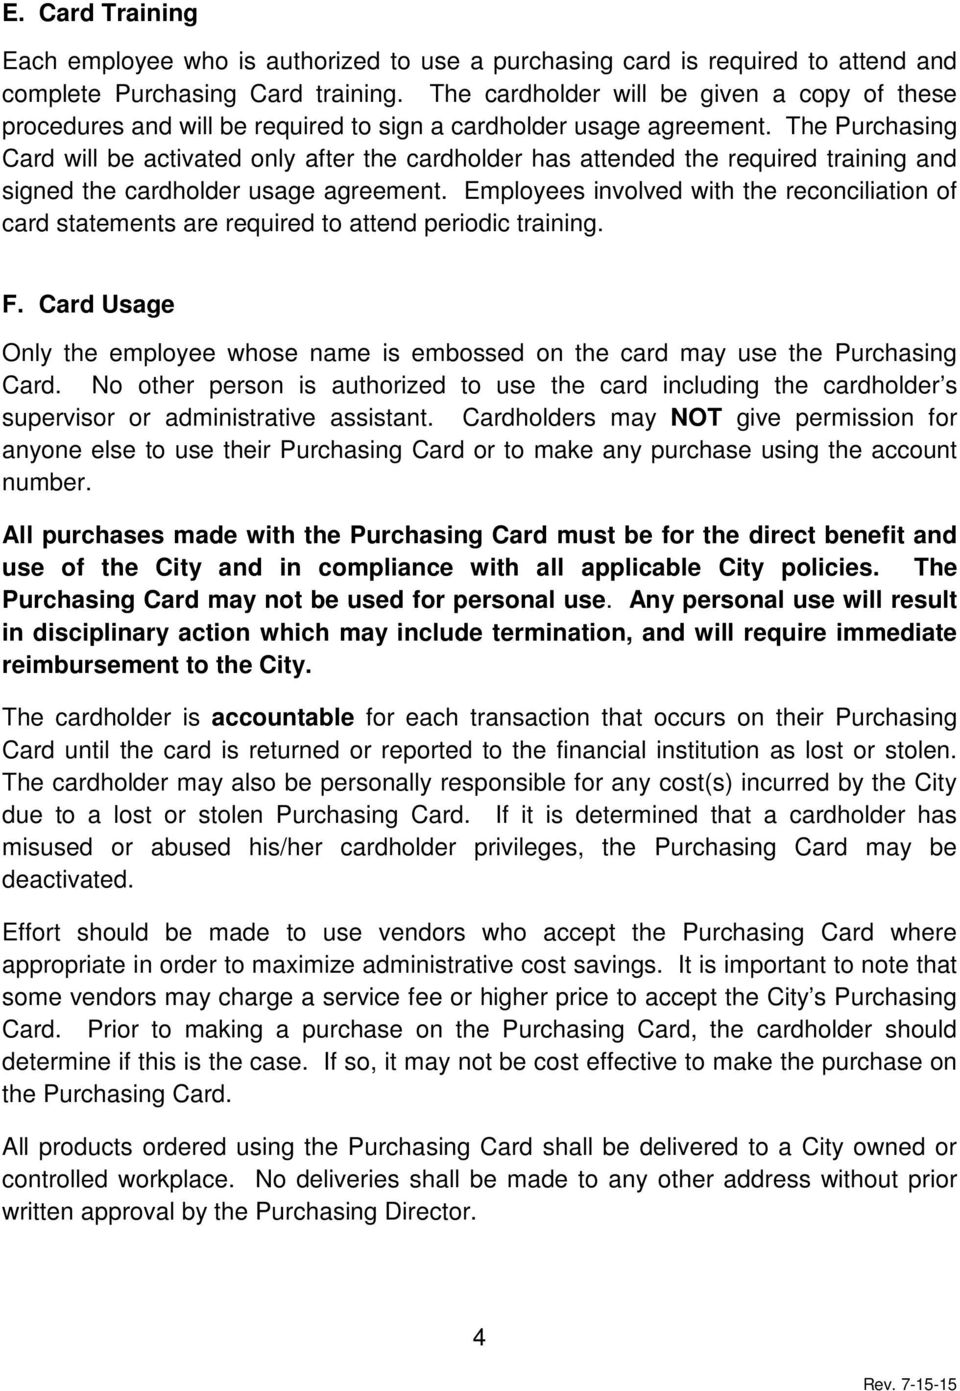 The Purchasing Card will be activated only after the cardholder has attended the required training and signed the cardholder usage agreement.